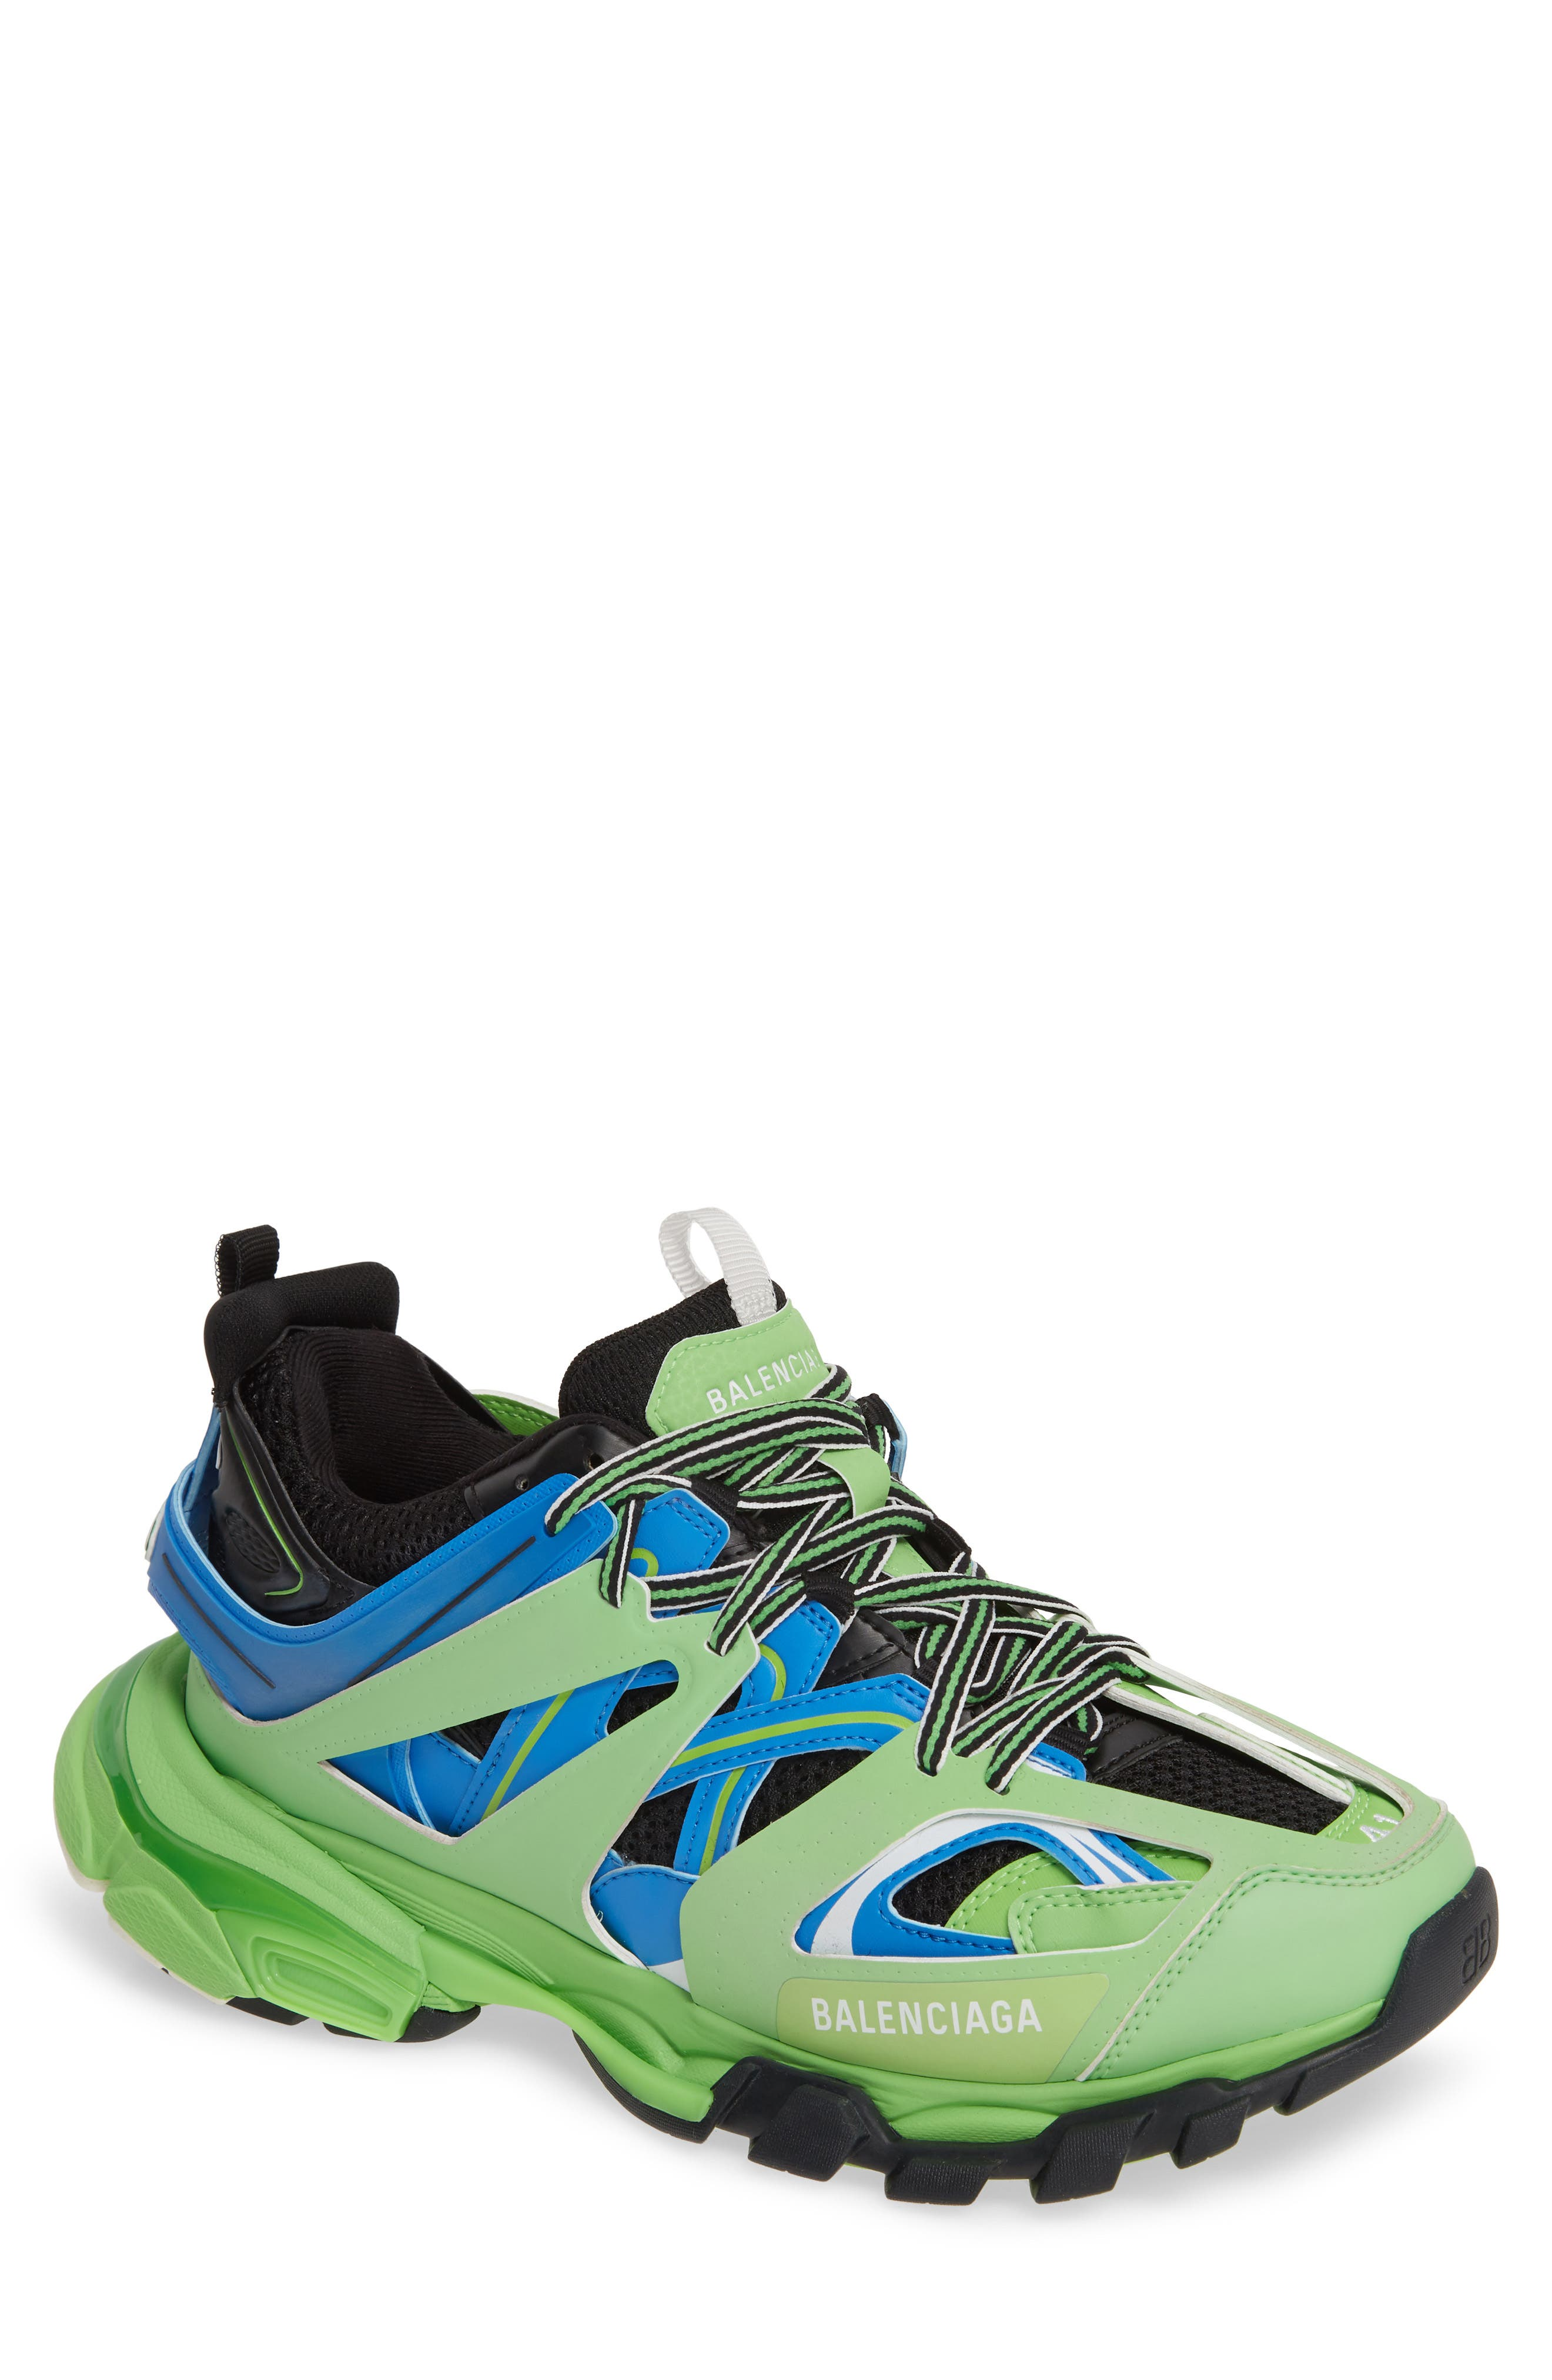 BALENCIAGA Track Sneaker, Main, color, 4078 BLUE/ GREEN